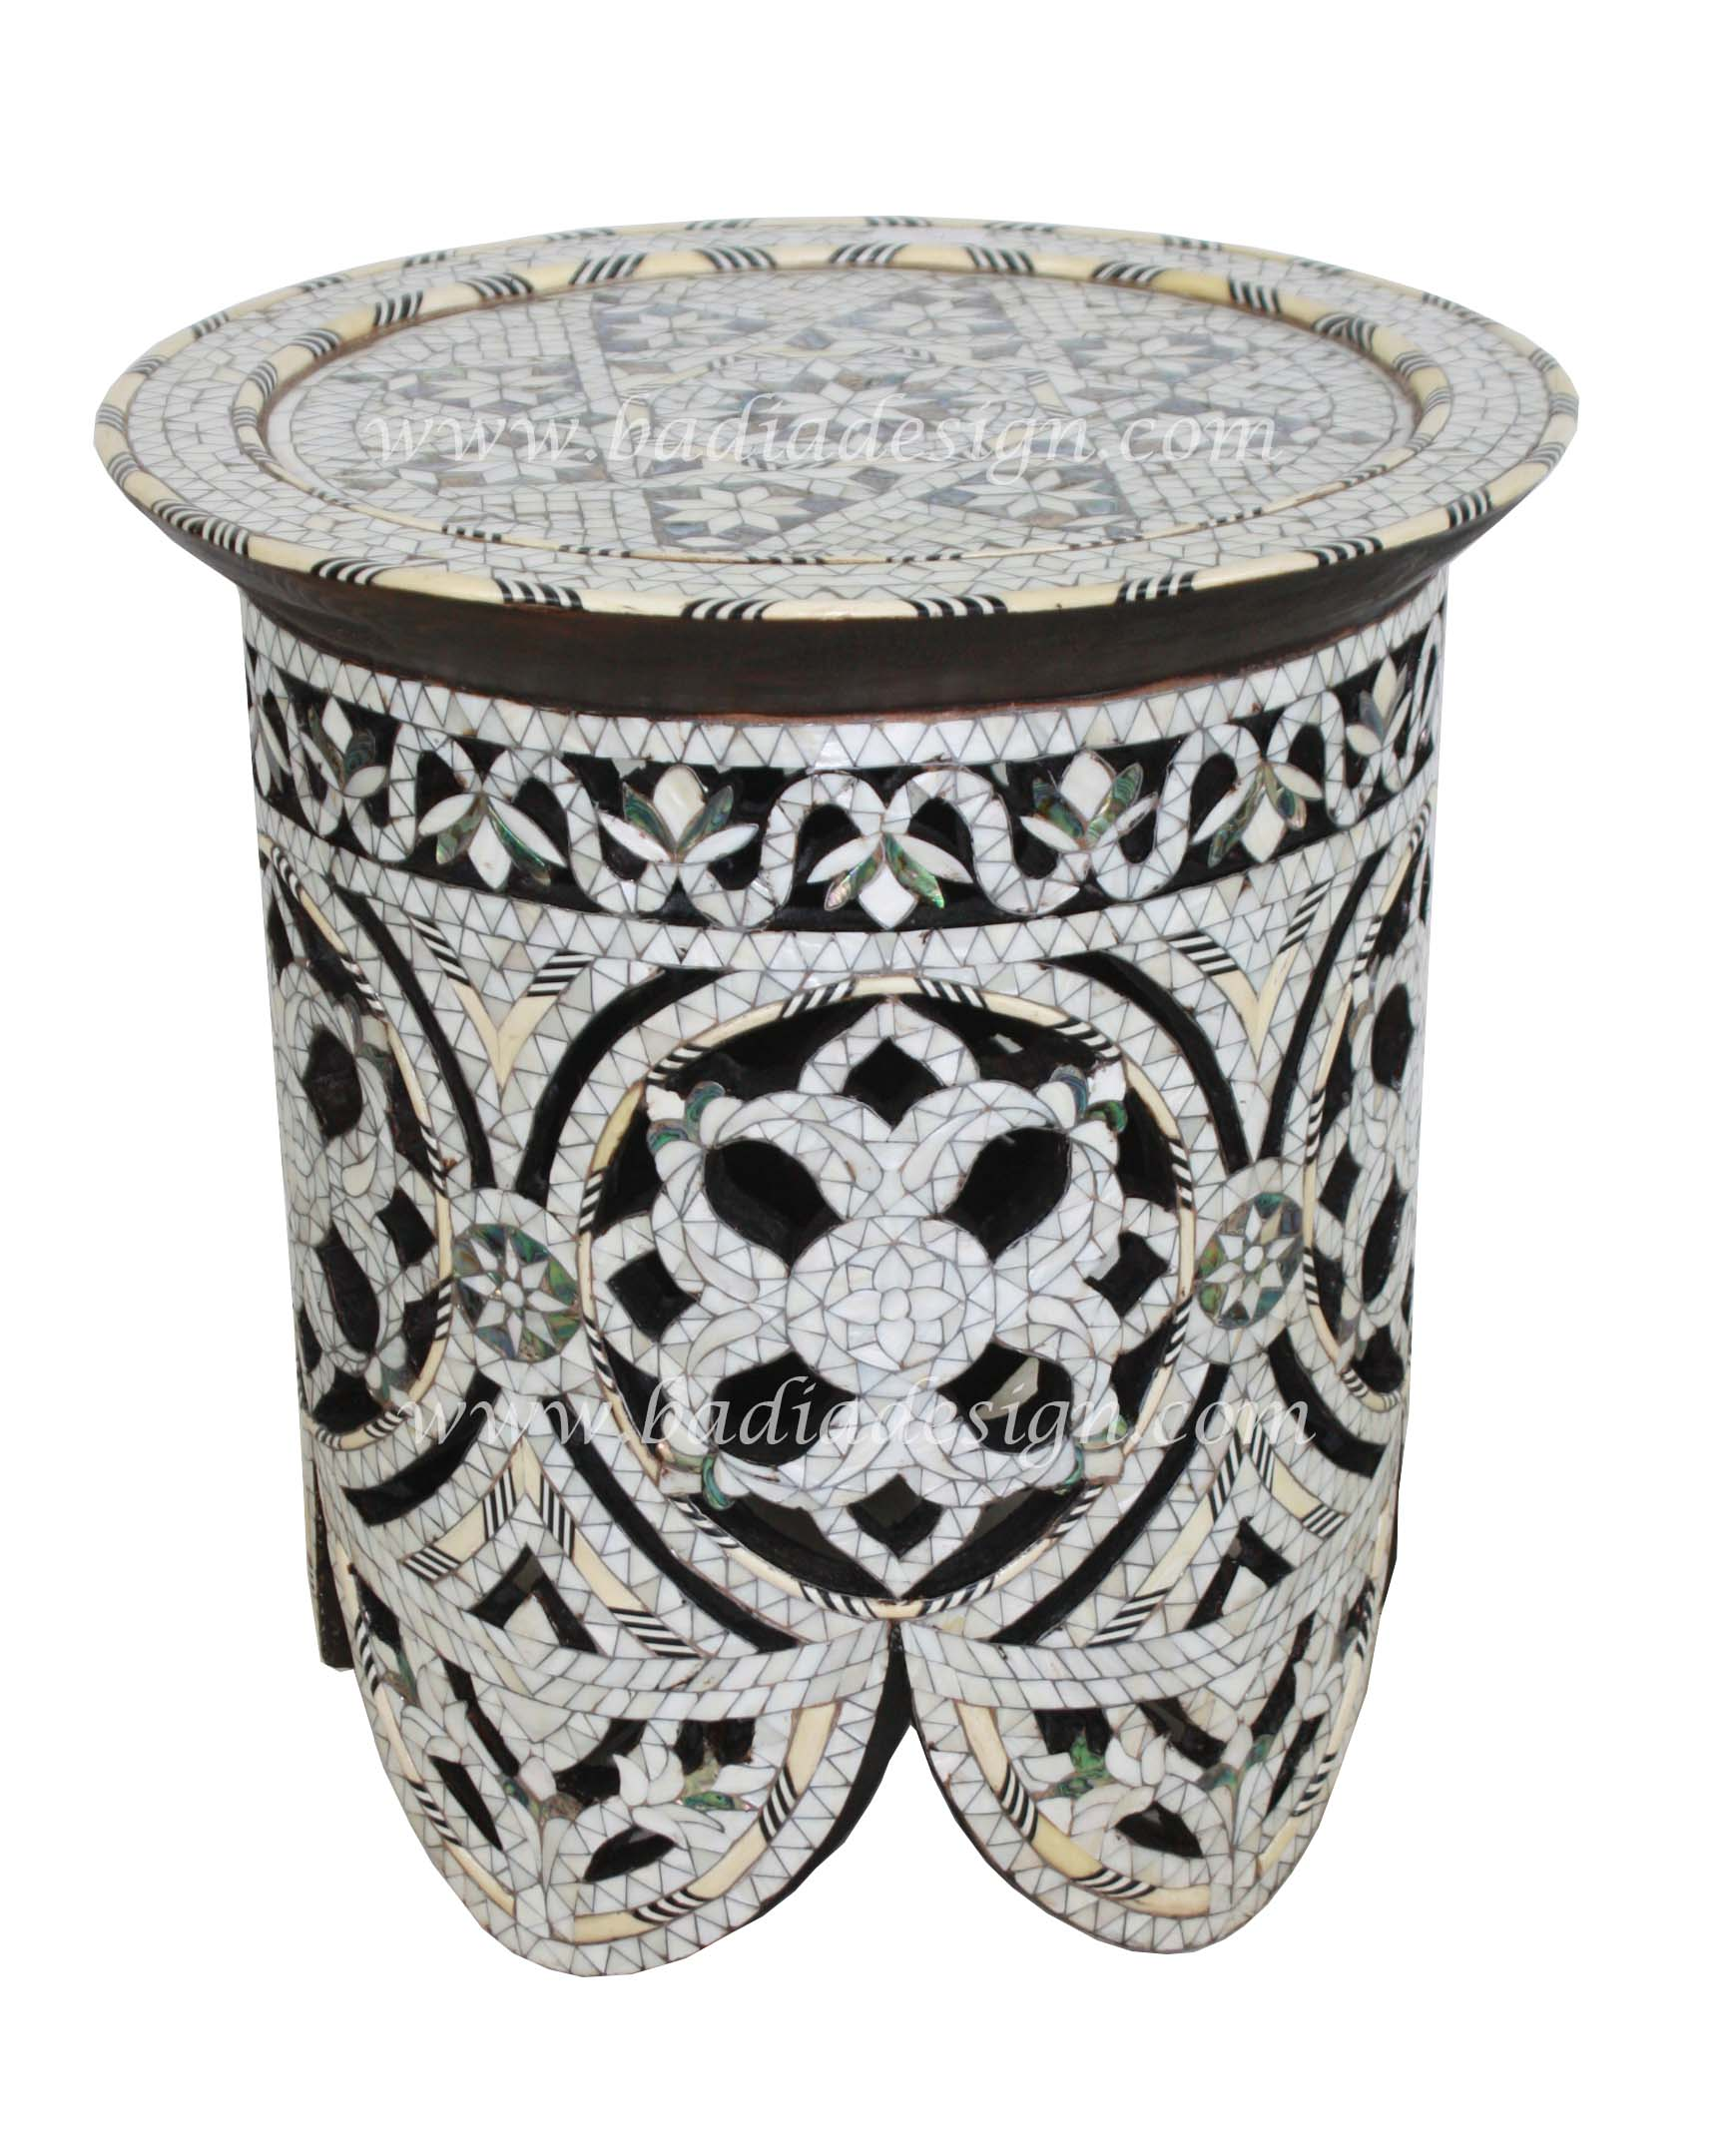 moroccan-mother-of-pearl-table-mop-st058-1.jpg